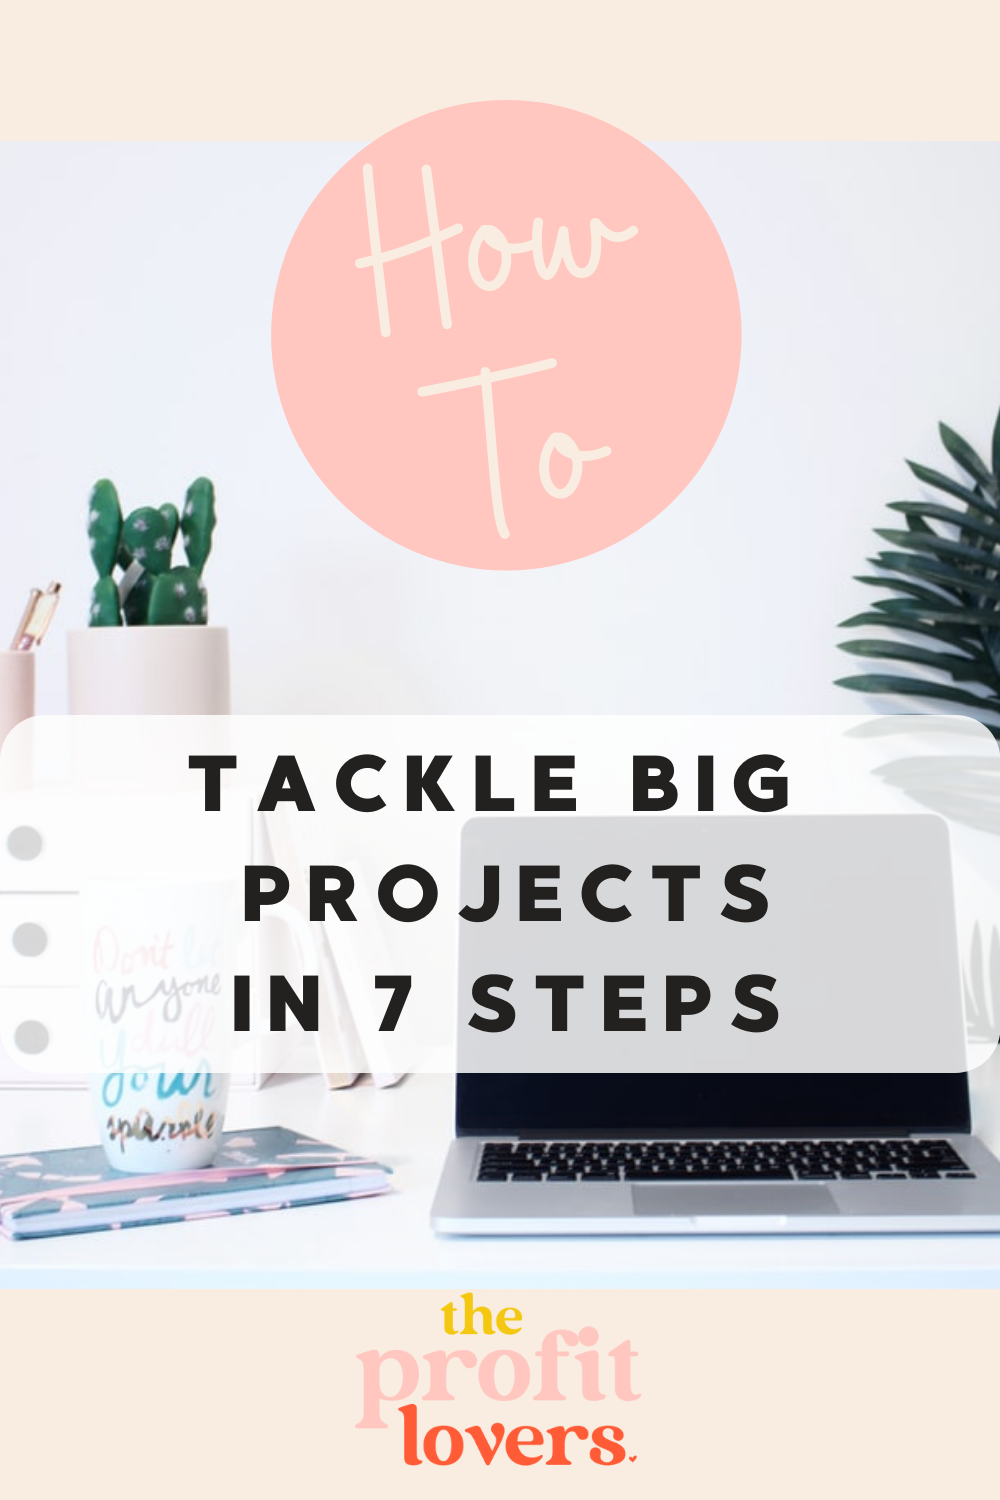 HOW TO TACKLE BIG PROJECTS IN 7 STEPS